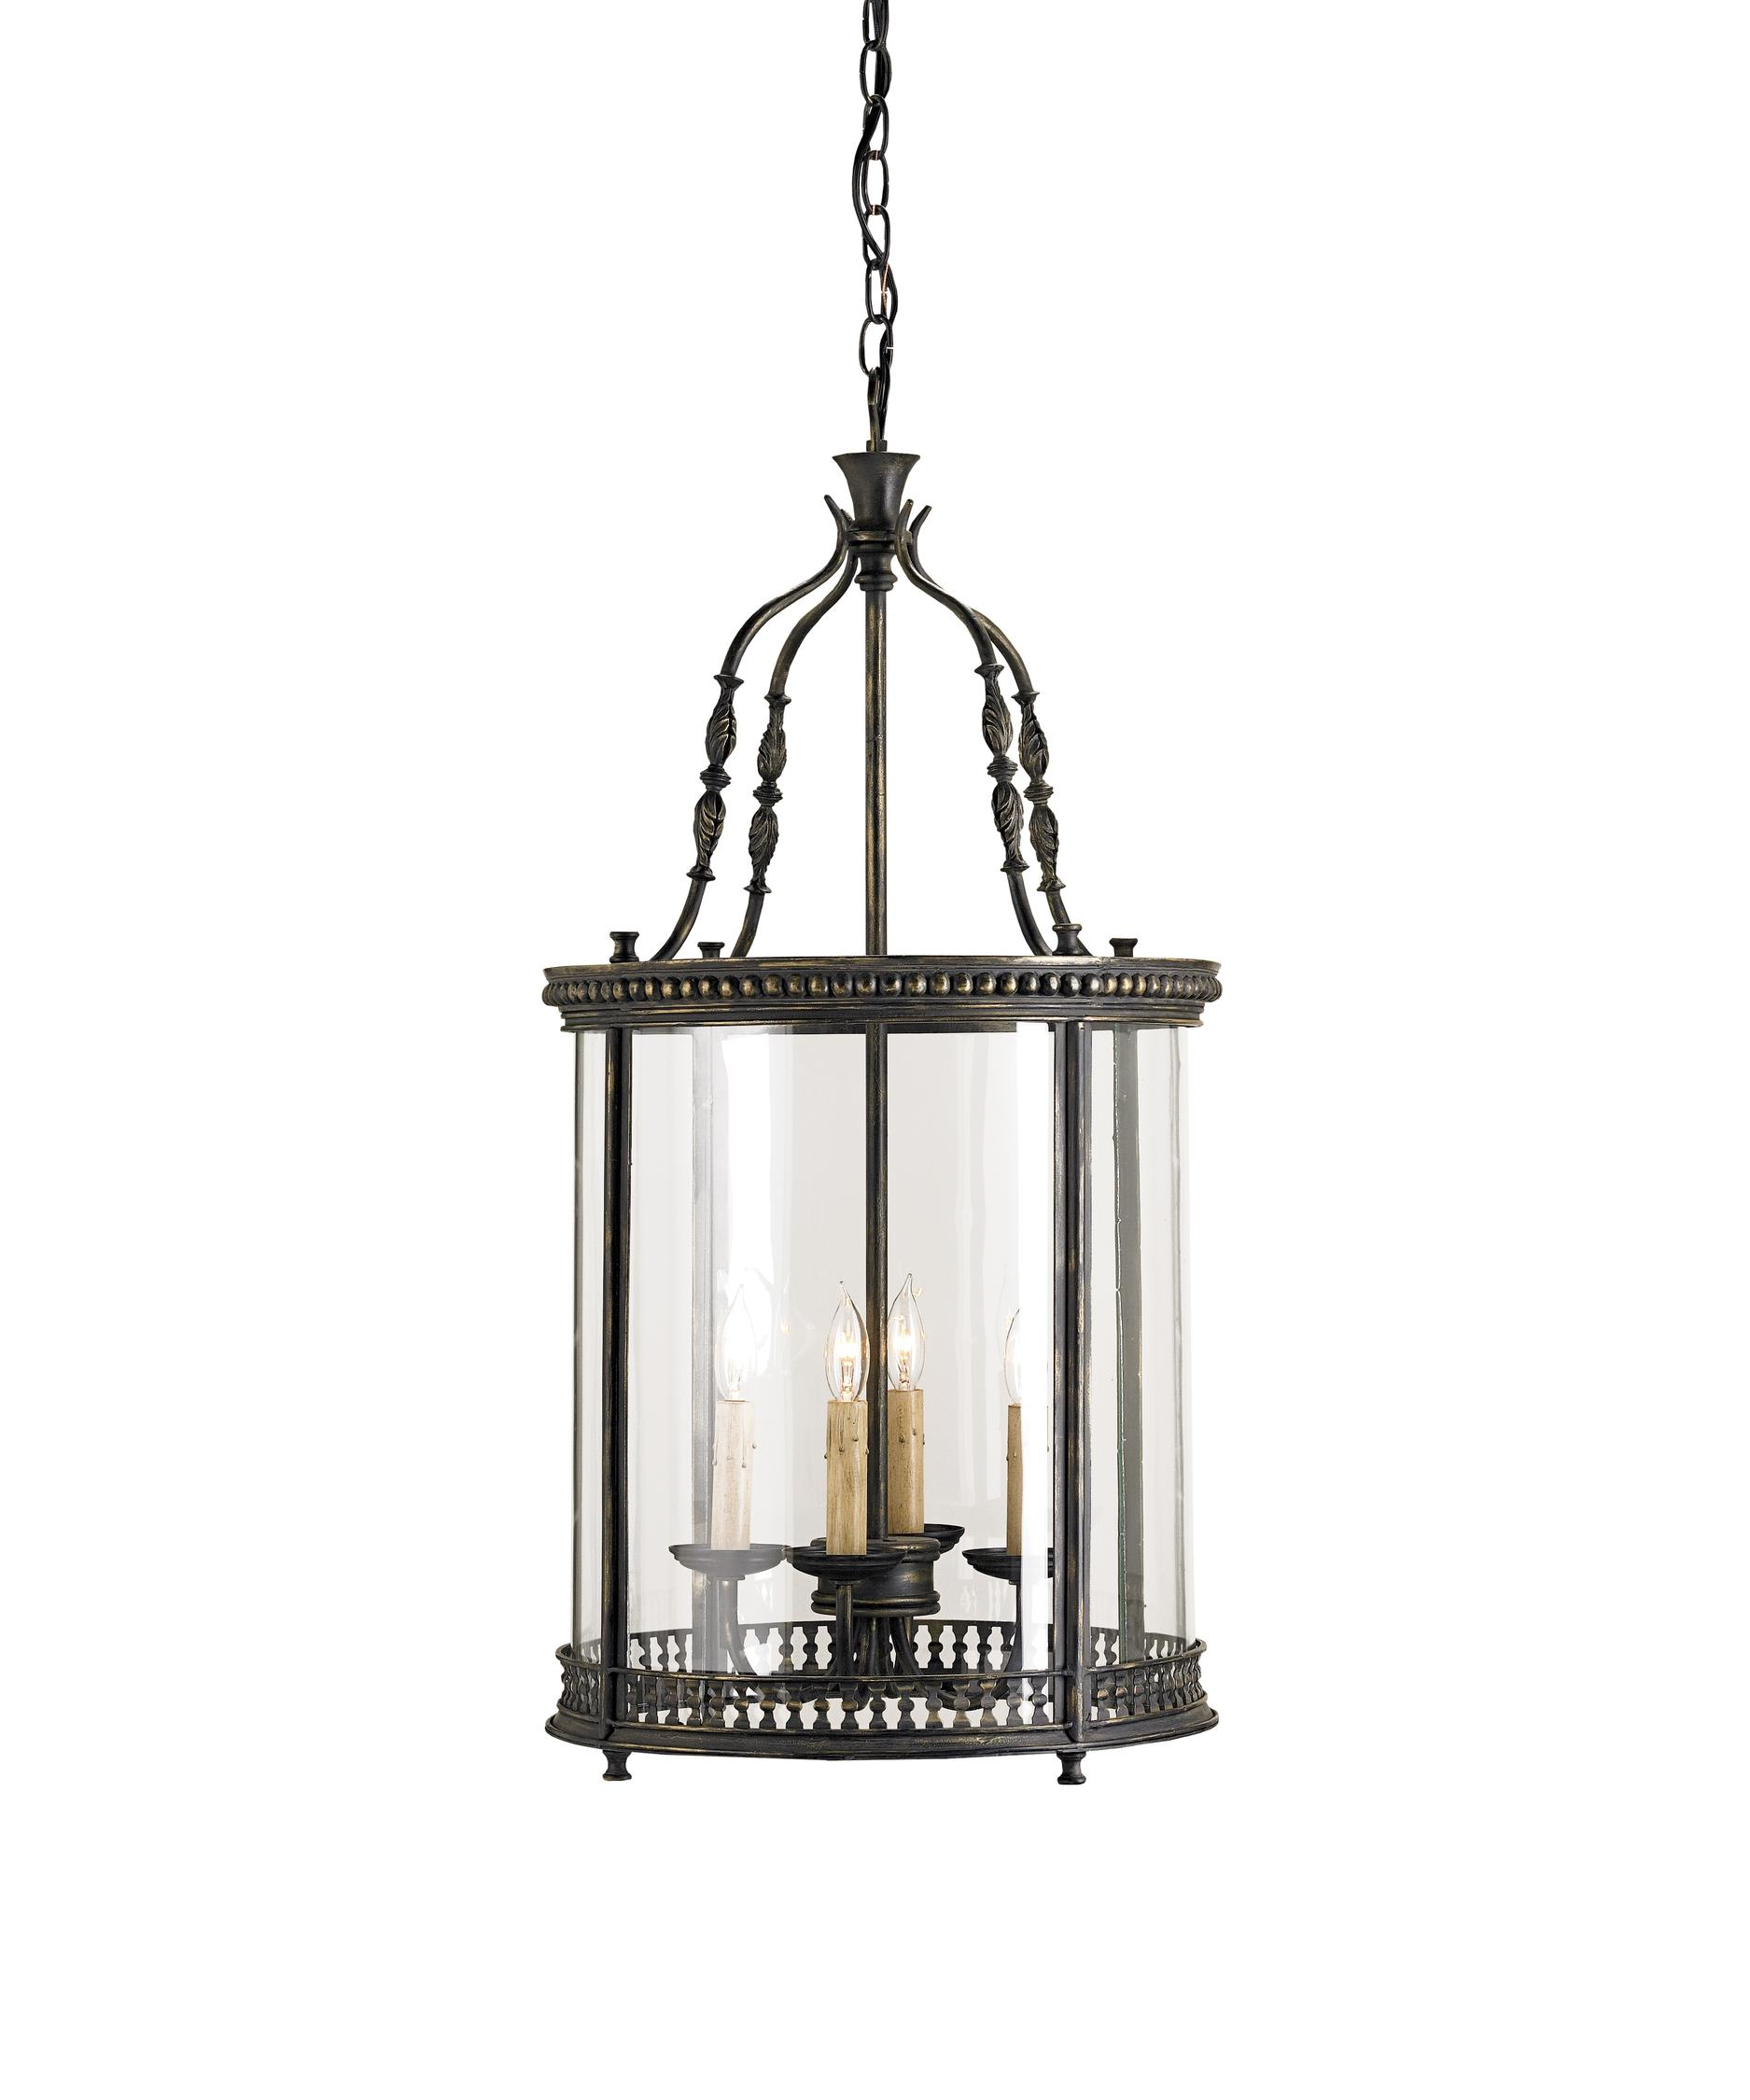 Currey and Company Grayson 16 Inch Wide Foyer Pendant | Capitol Lighting  1-800lighting.com